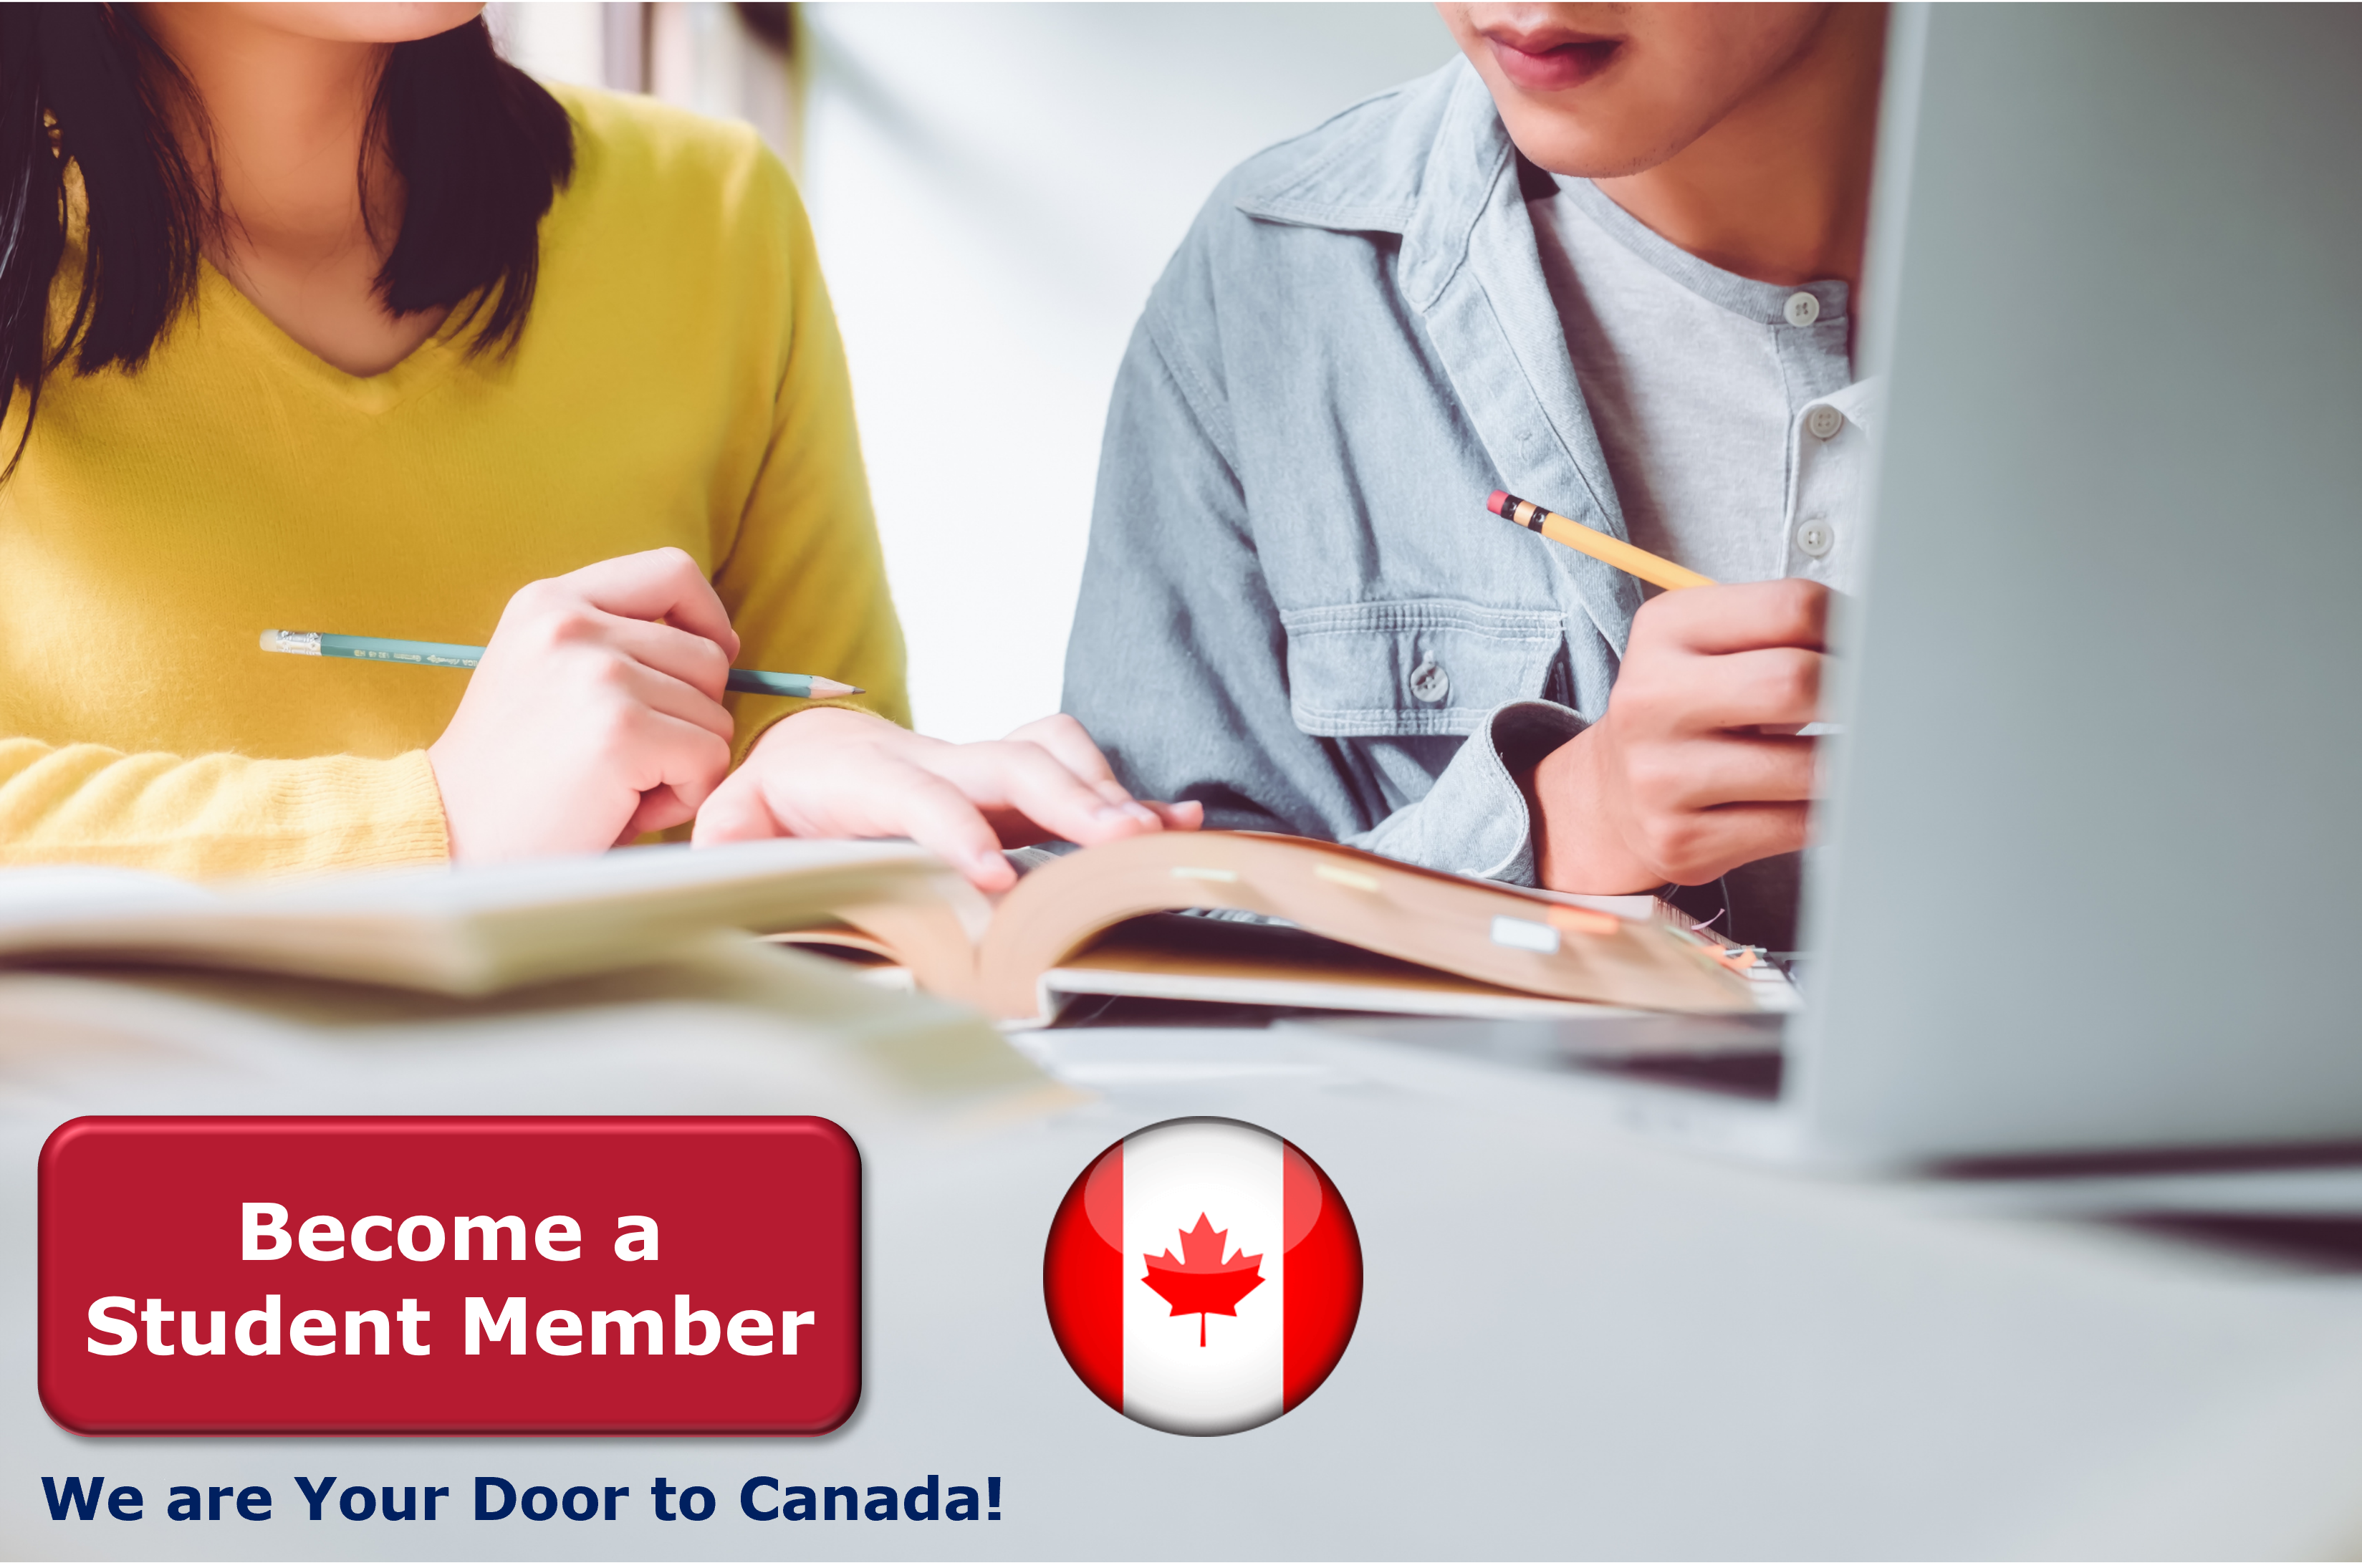 Become a Student Member to Study in Canada and Stay to Work